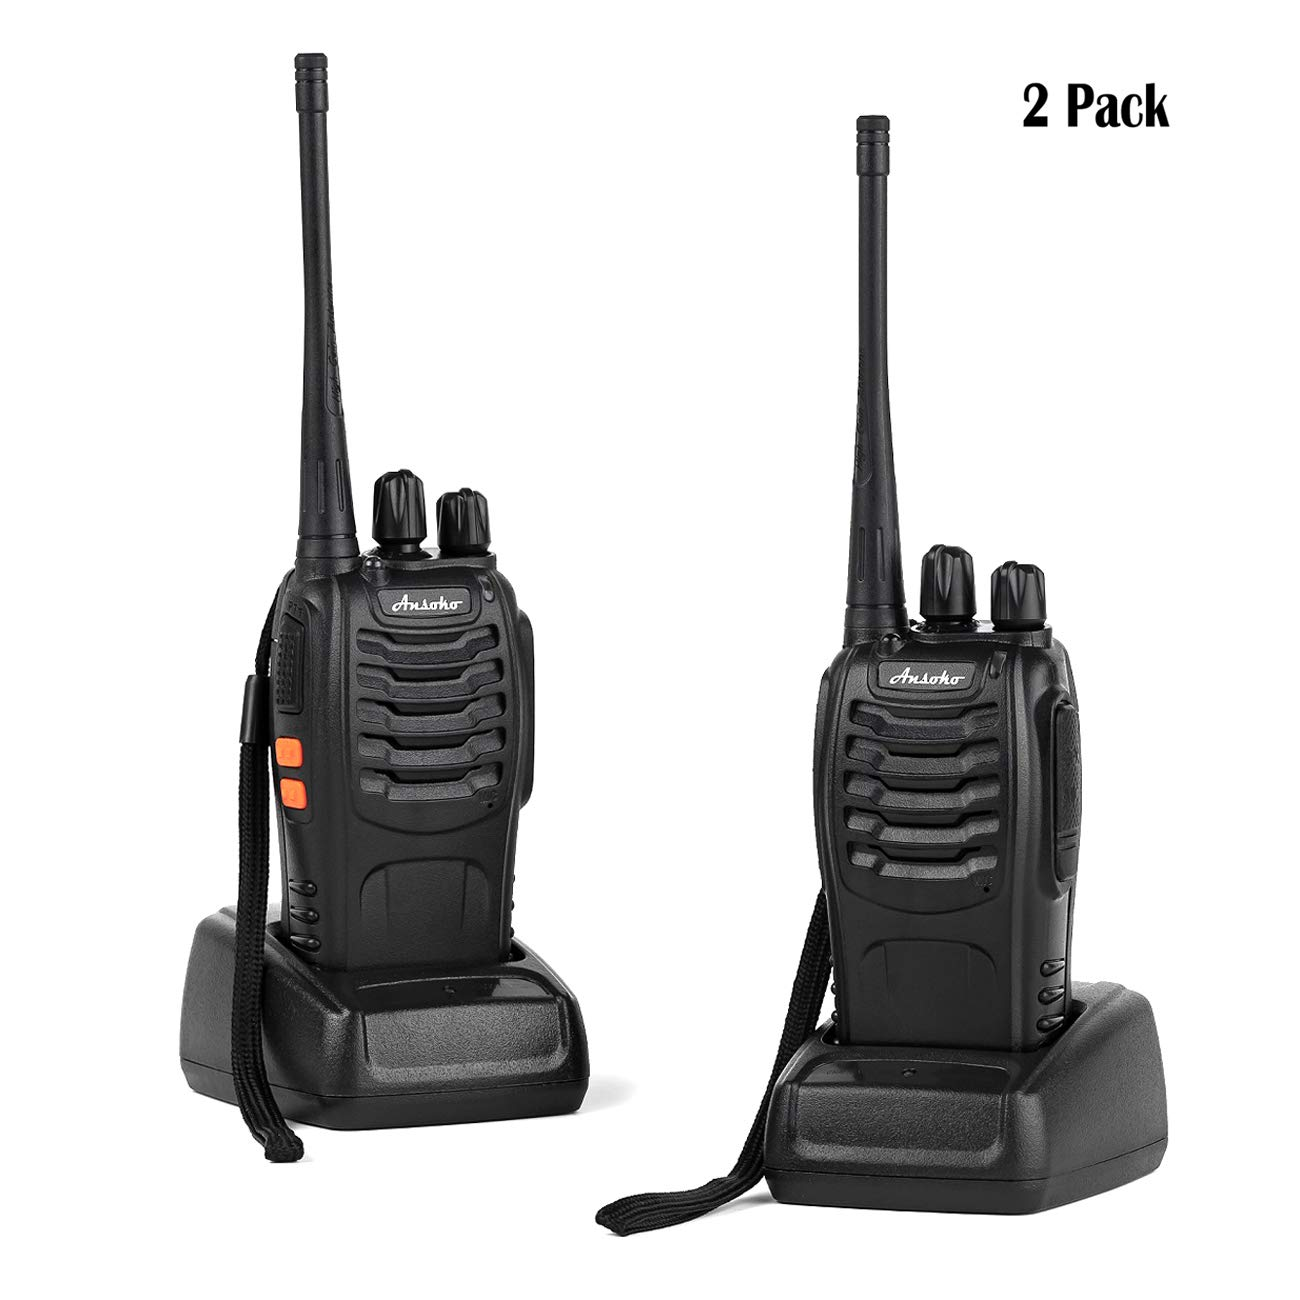 Ansoko Rechargable Walkie Talkies Long Range Portable Two Way Radios 16-Channel FRS/GMRS Walkie Talkie (Pack of 2) by Ansoko